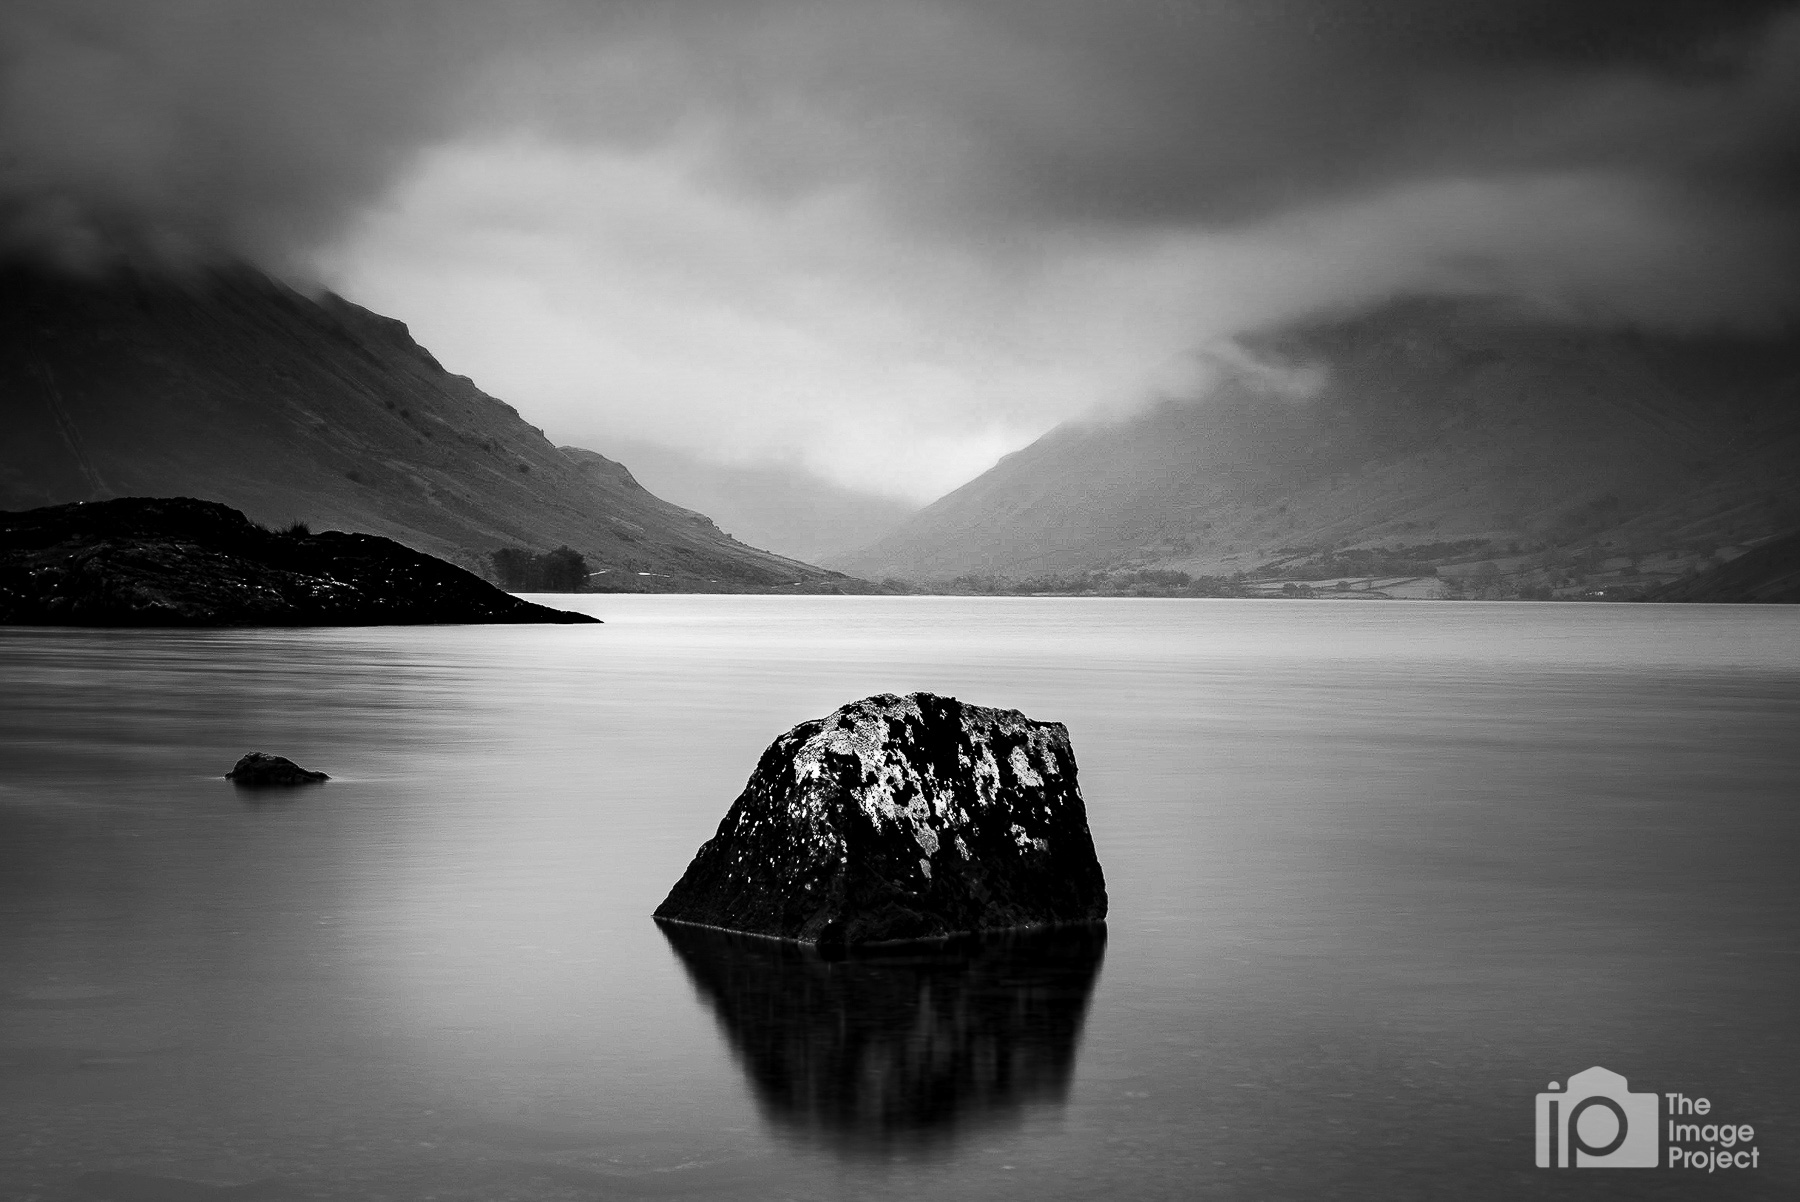 First visit to Wastwater - hopefully the first of many